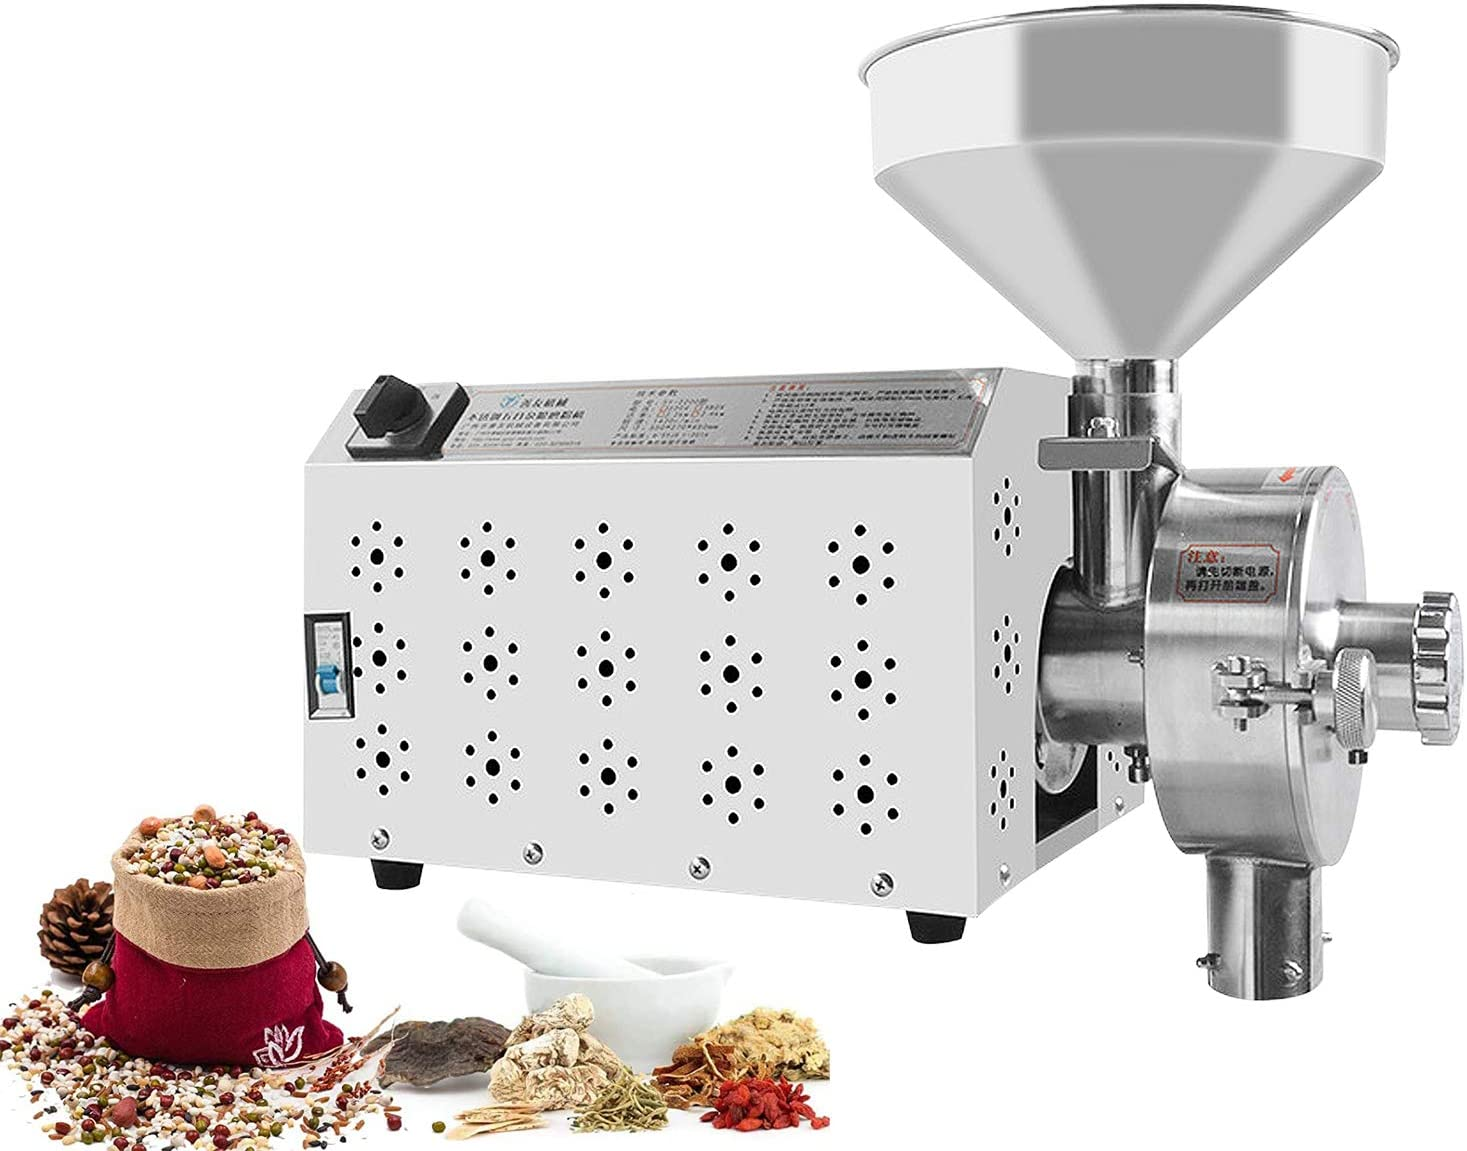 CGOLDENWALL Commercial Stainless steel Spice and Chinese Herb Grinder Industrial Electric Peppe Grain Mill Soybean Grain Food Grinding Machine 15-50kg/h (Voltage: 110V)